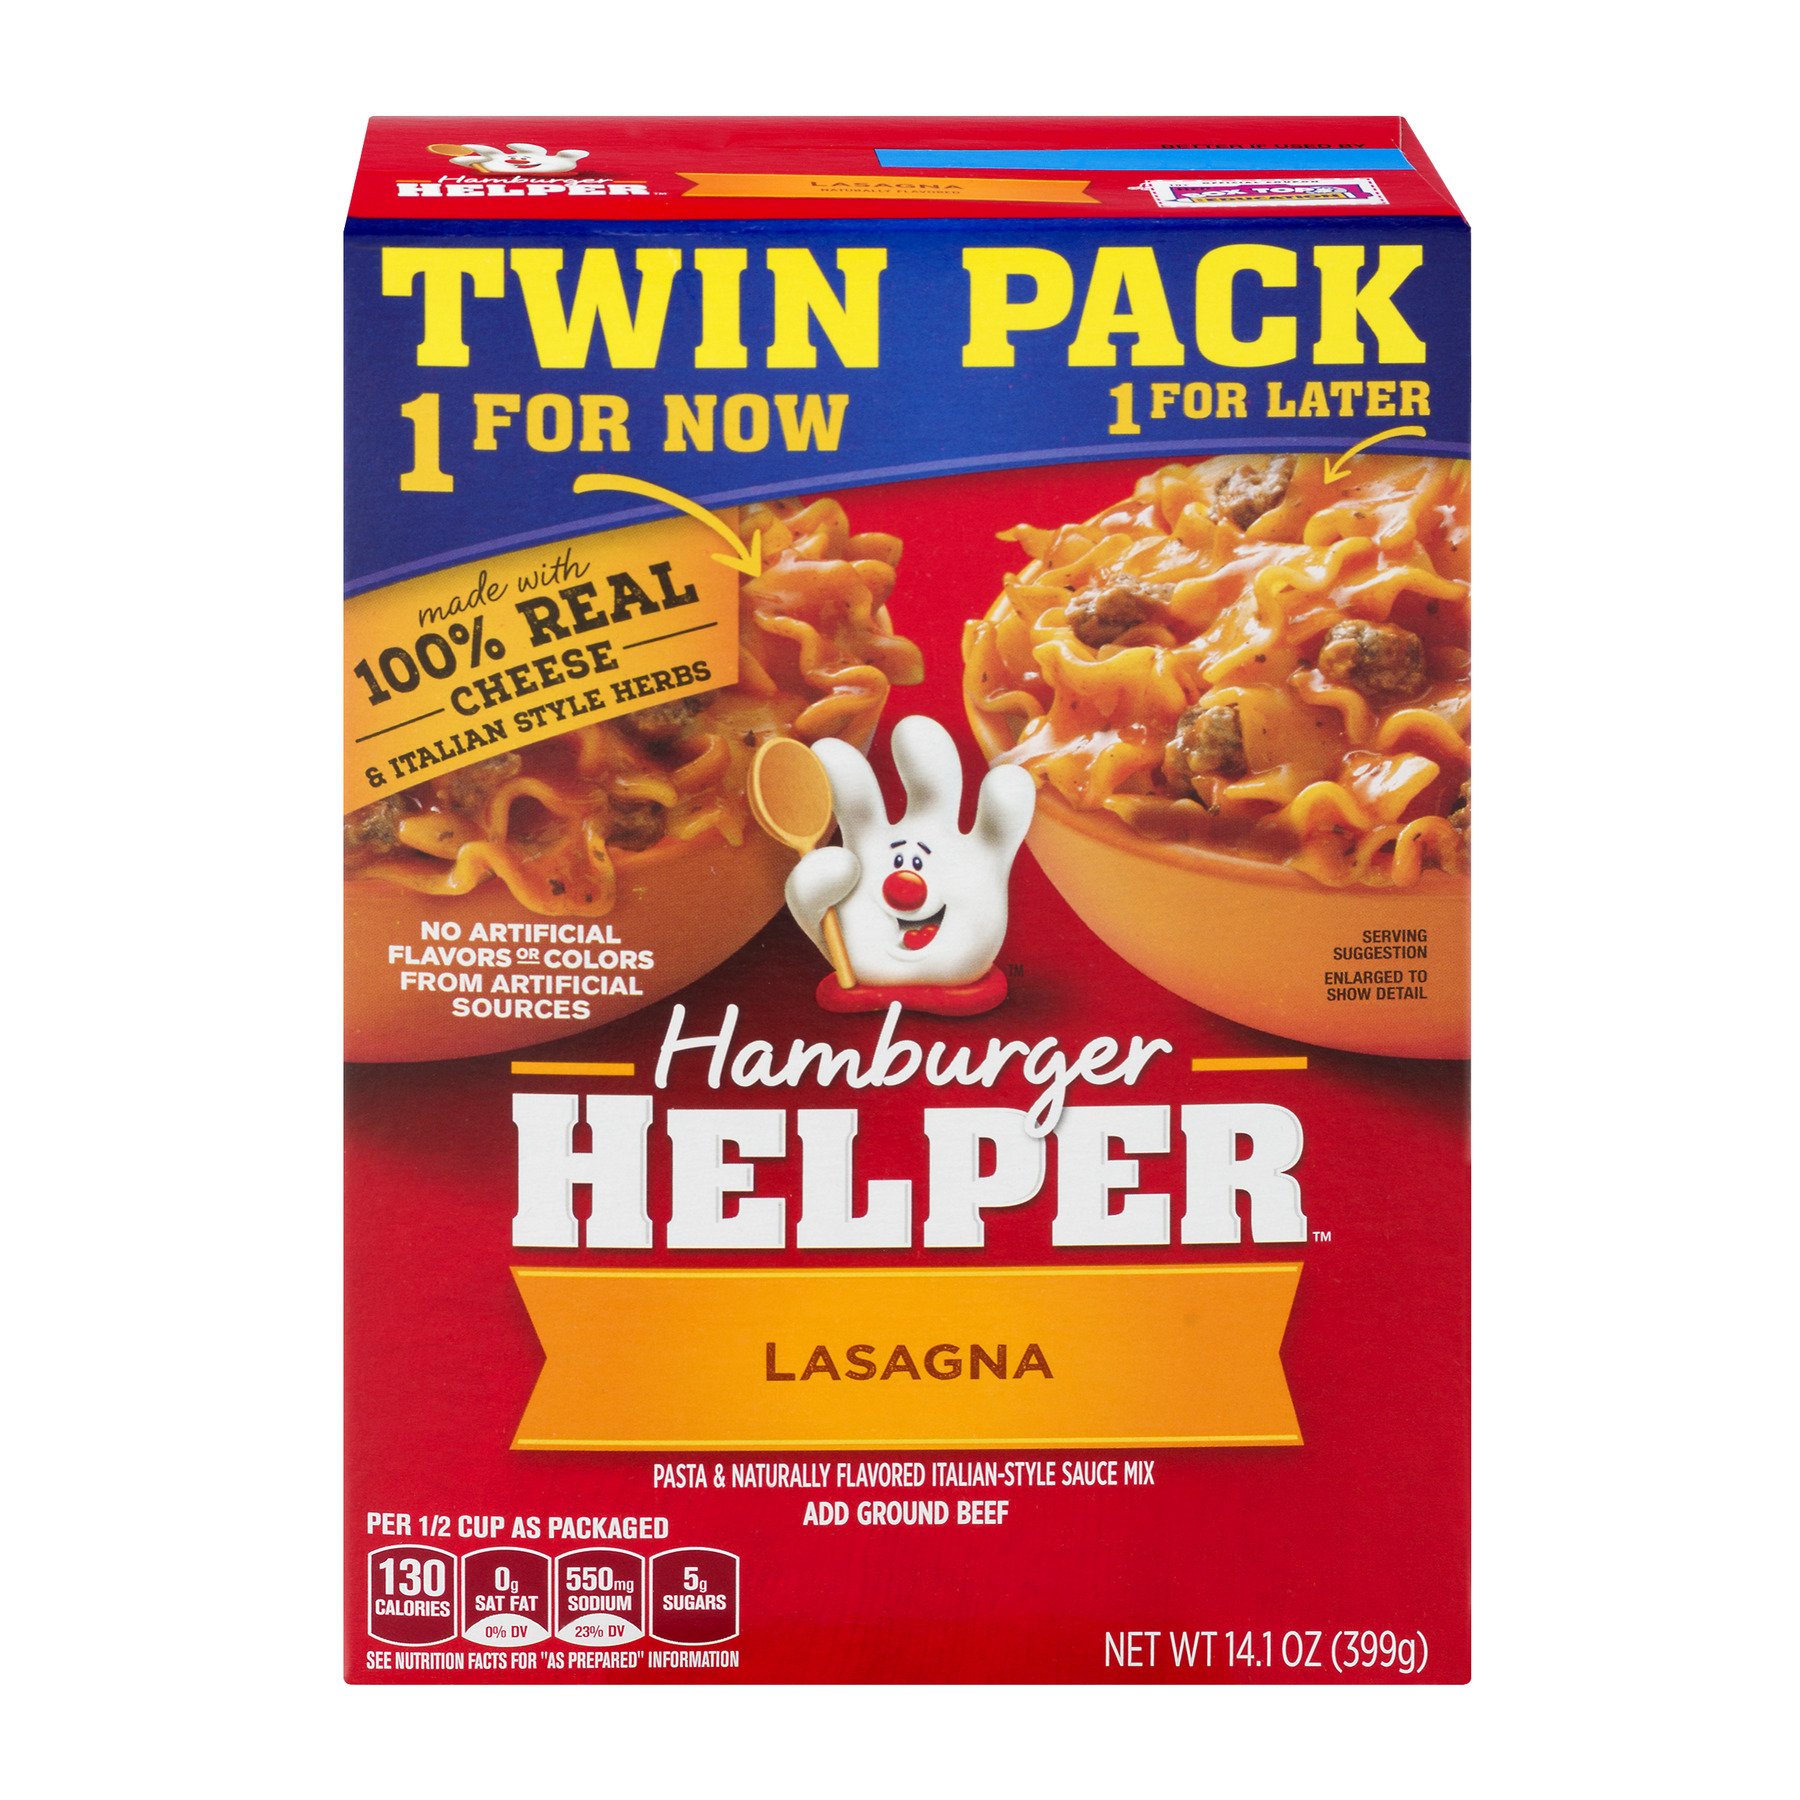 Betty Crocker Lasagna Hamburger Helper 14.1 oz. Box